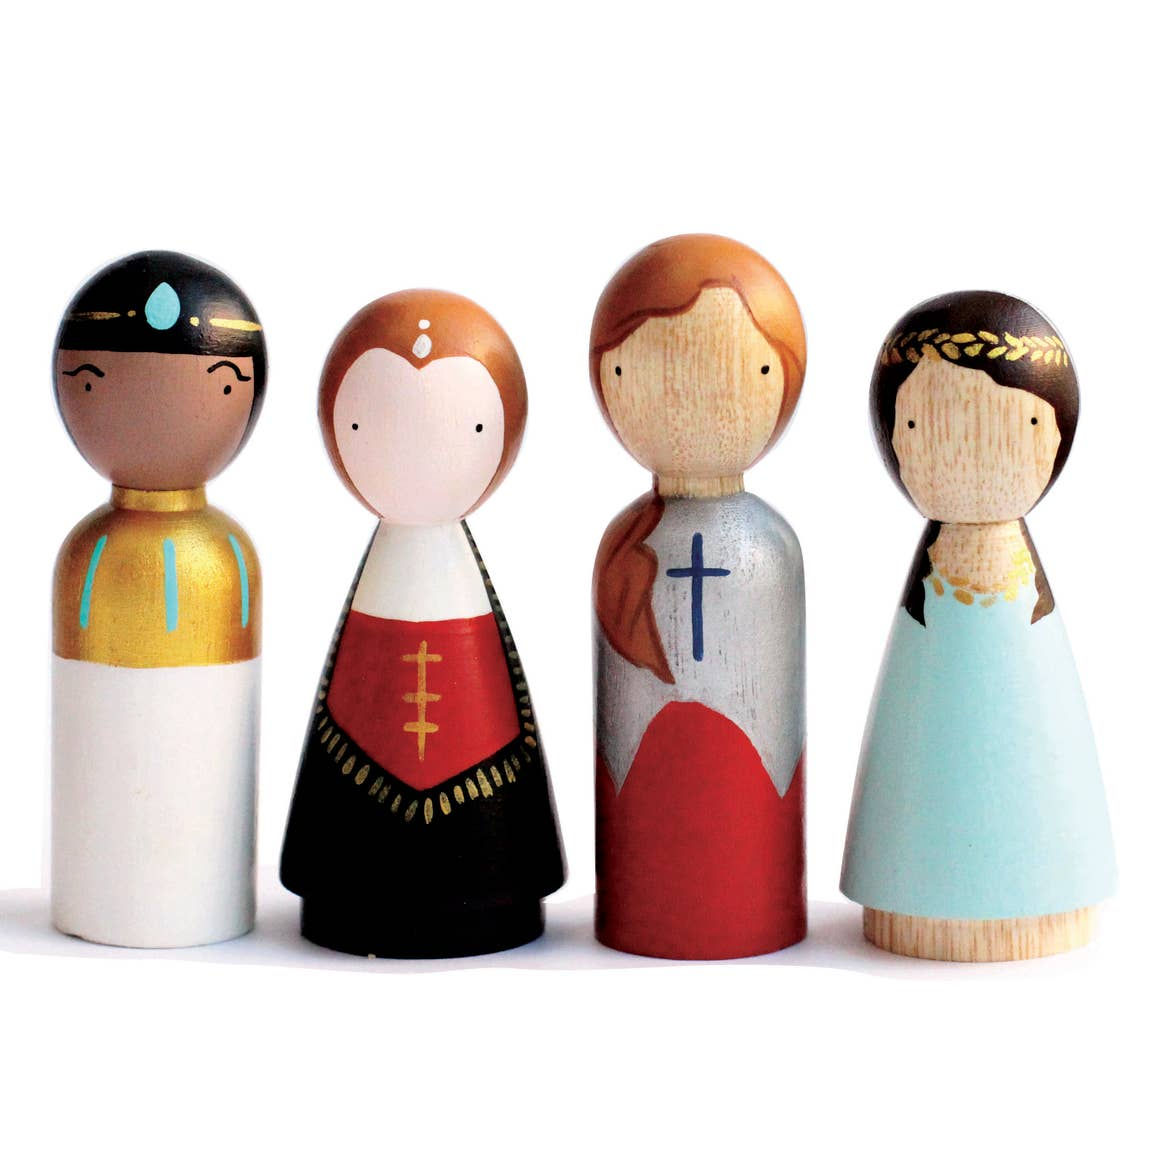 Women in Power Wooden Peg Dolls